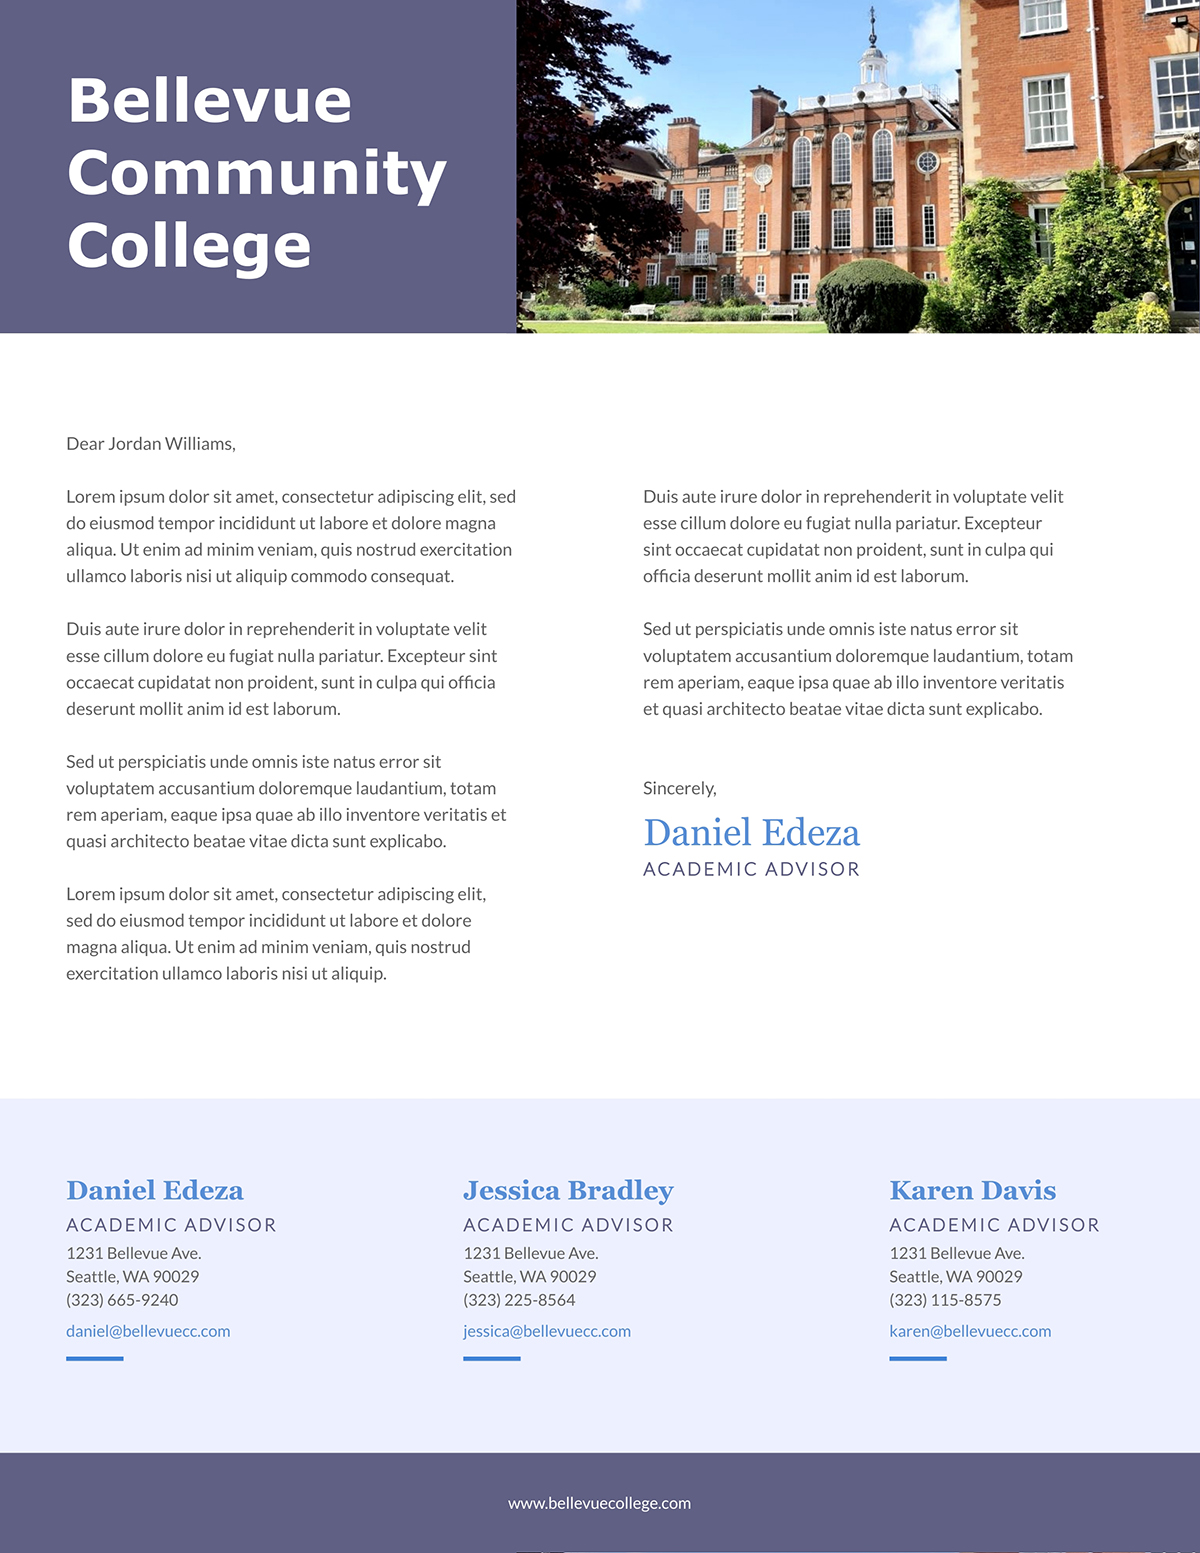 A community college letterhead template available to customize in Visme.